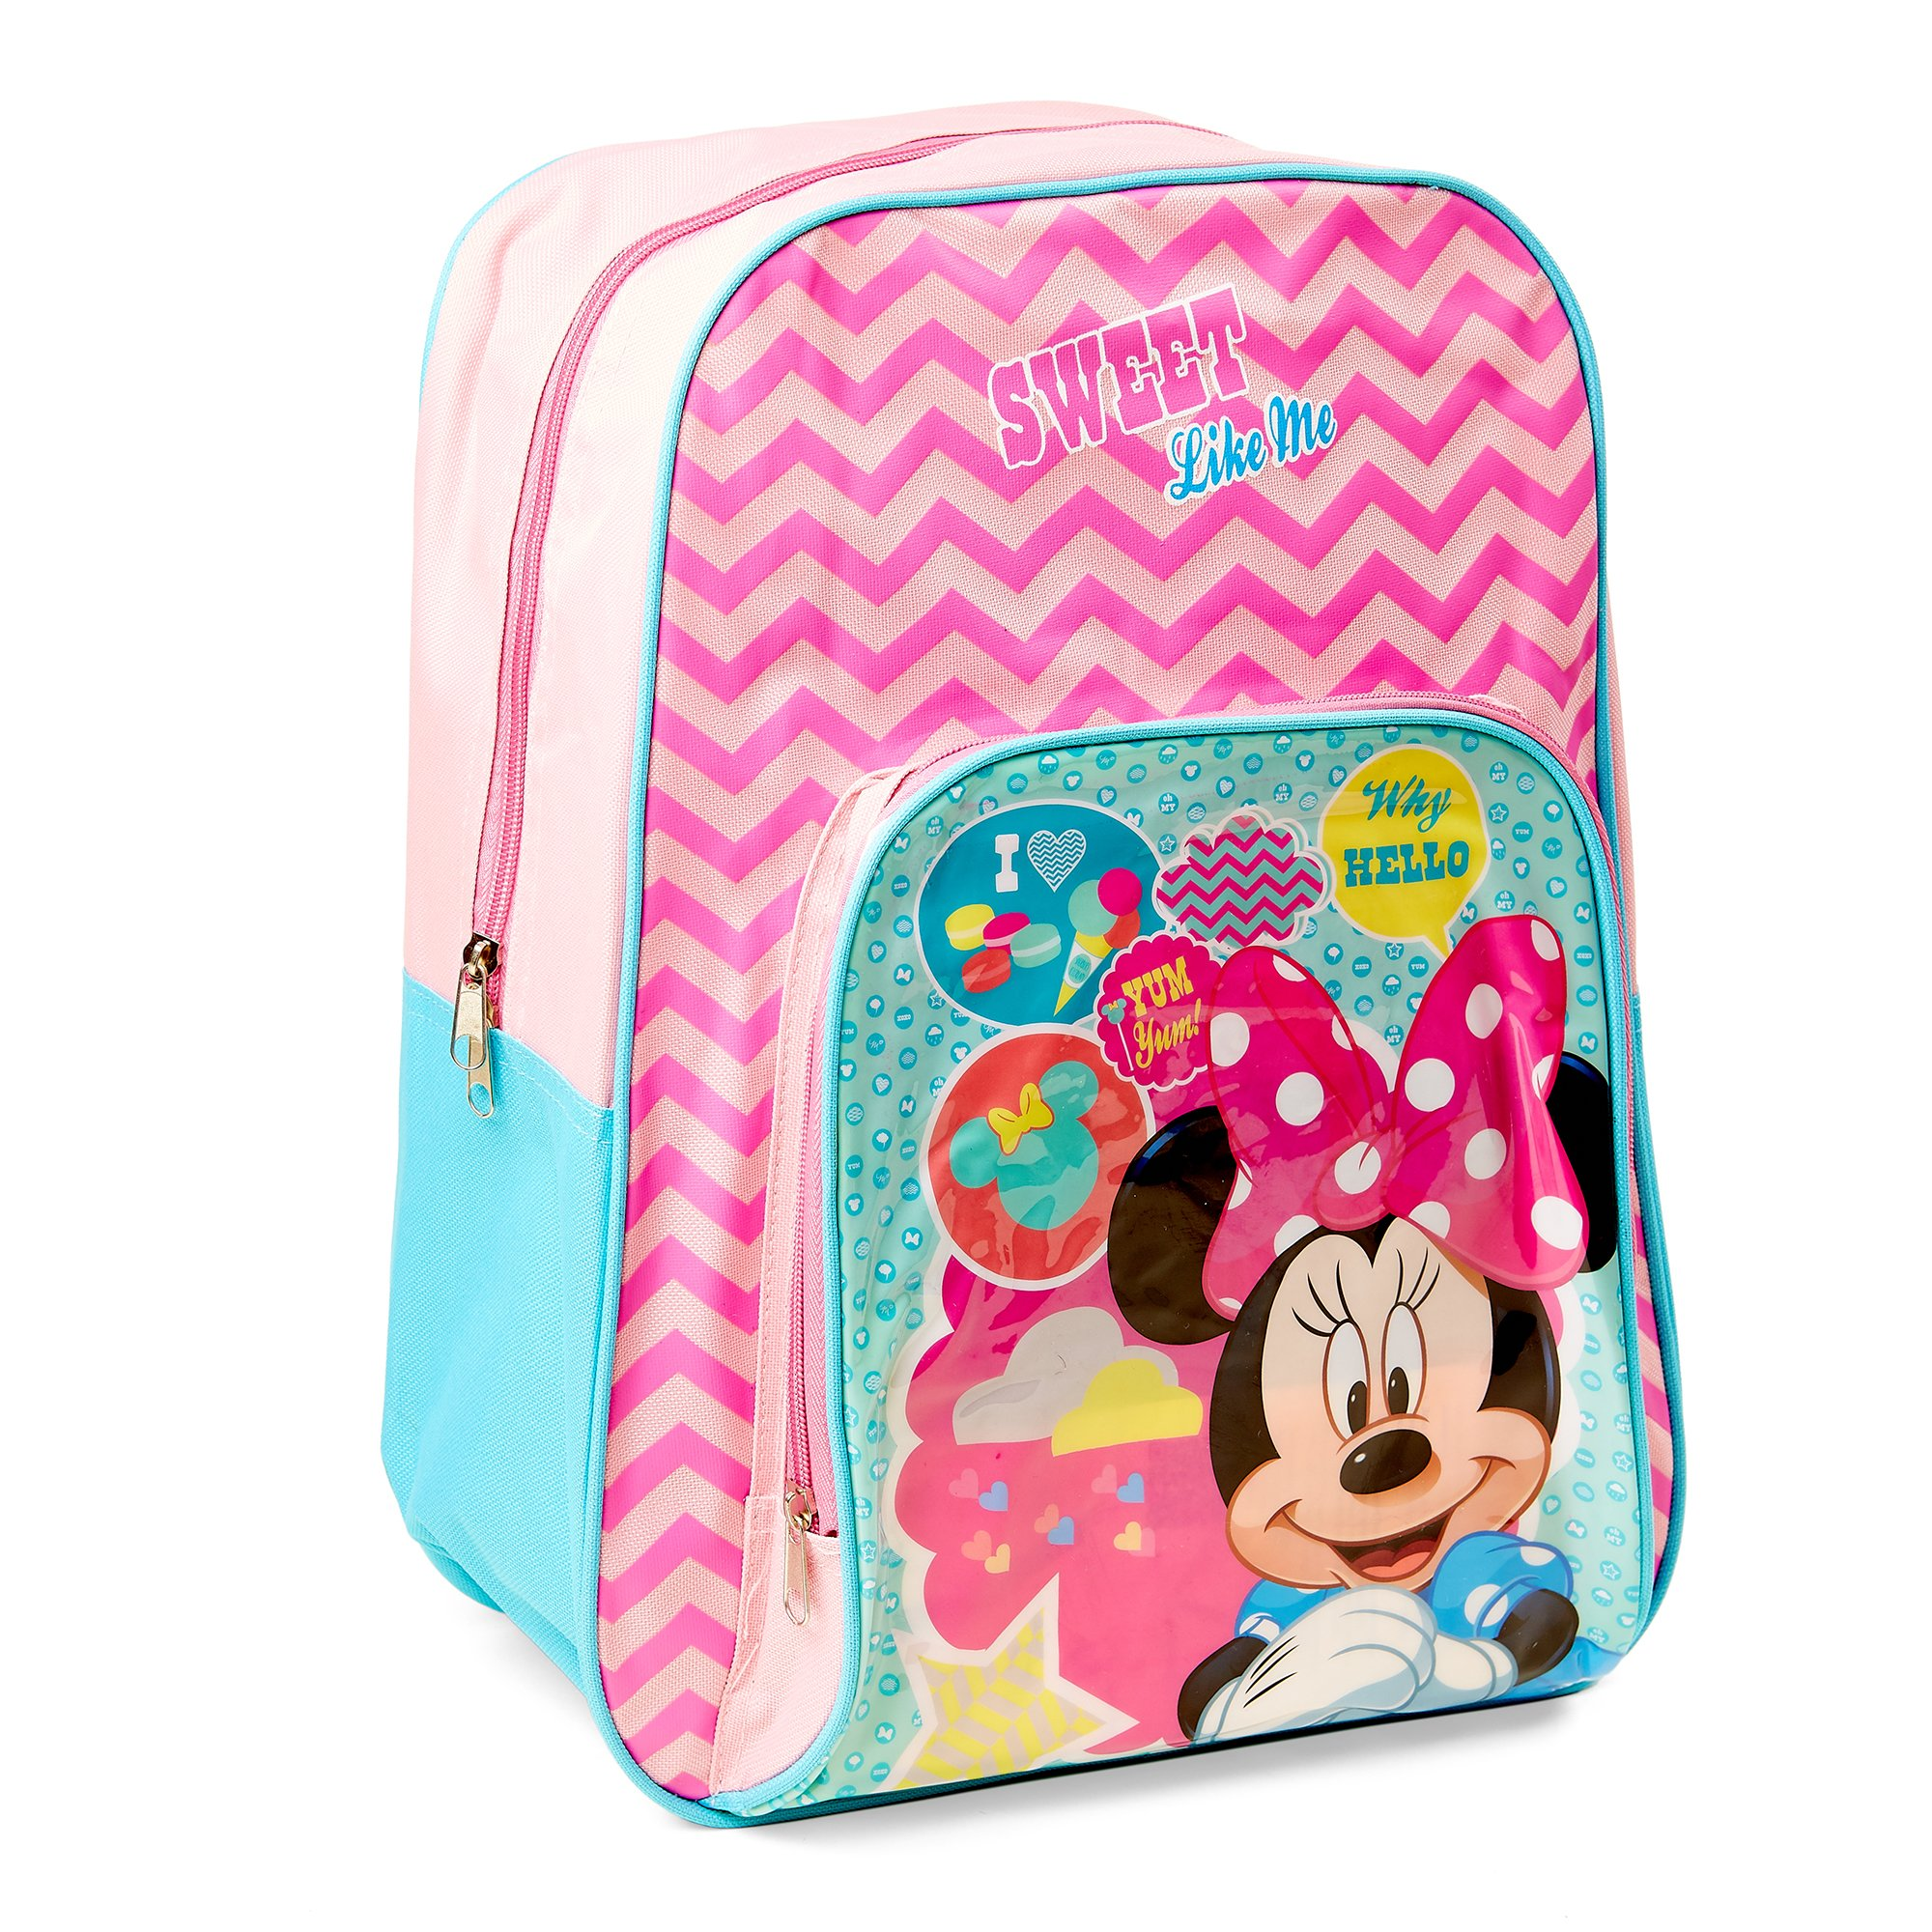 Рюкзак Минни Маус Disney (Arditex), WD9582